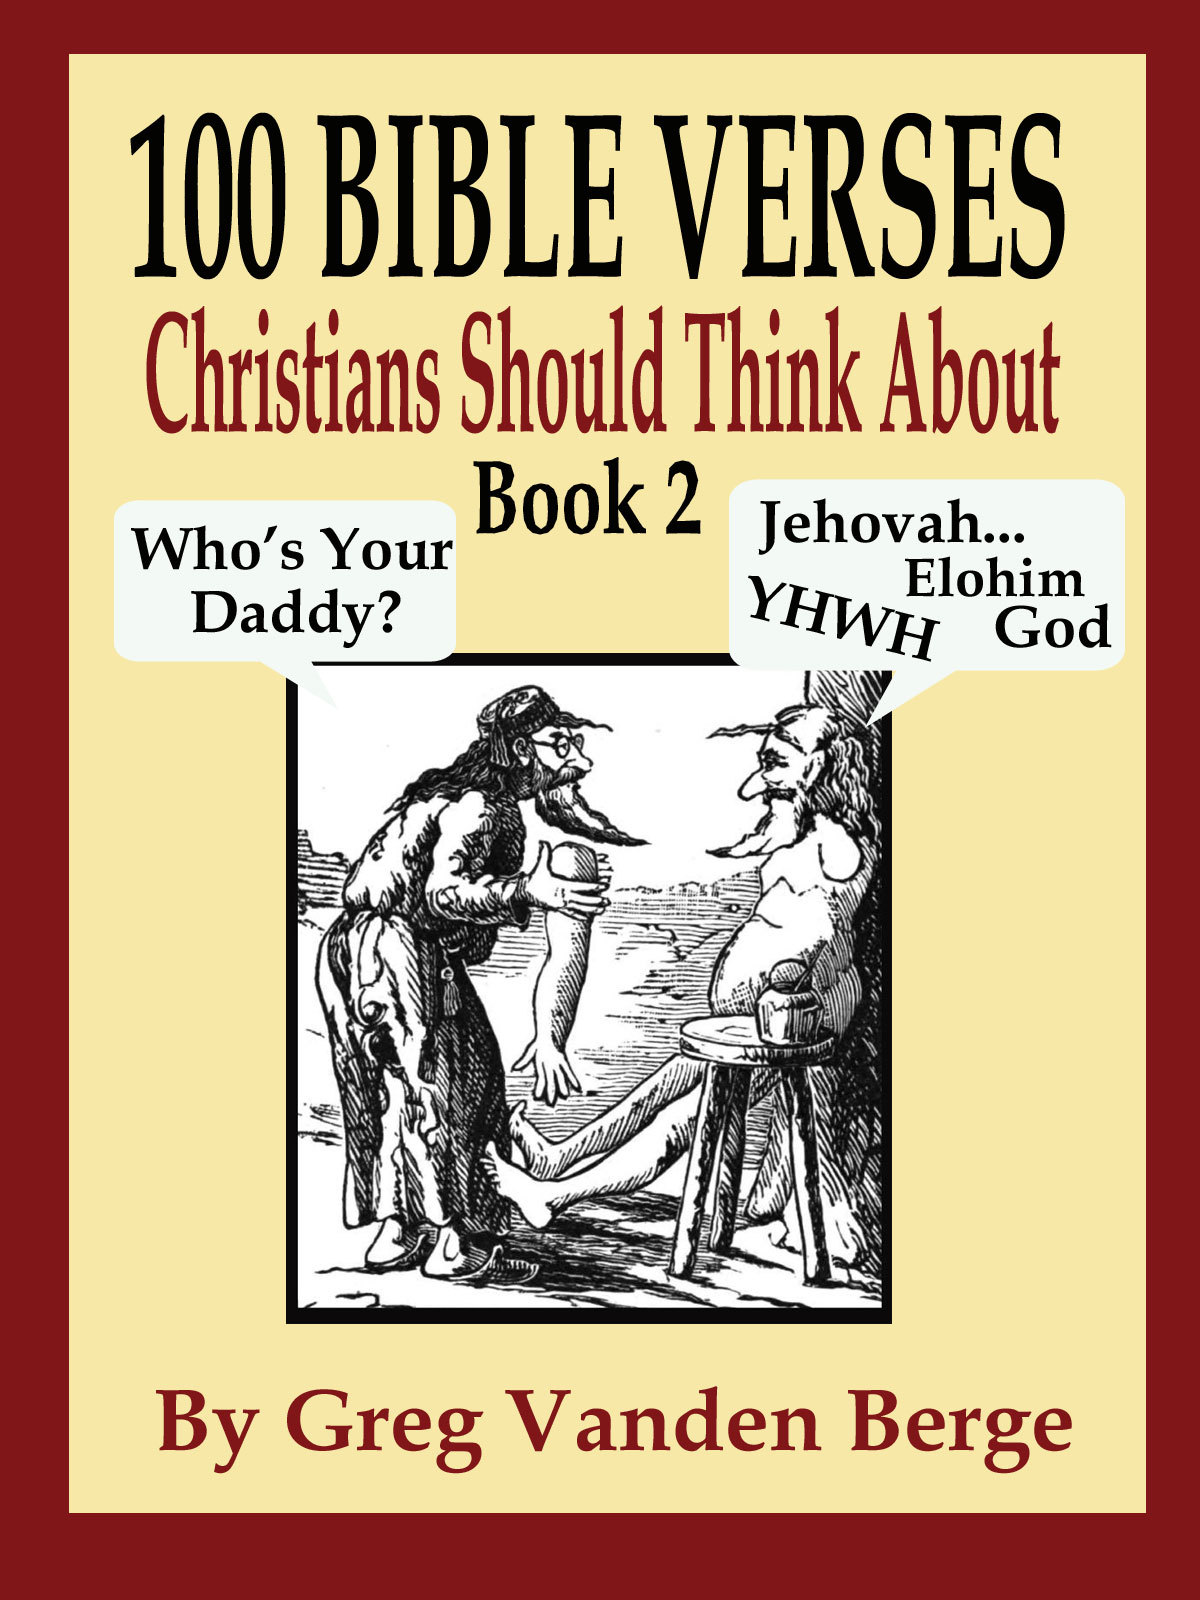 100 Bible Verses Christians Should Think About By: Greg Vanden Berge